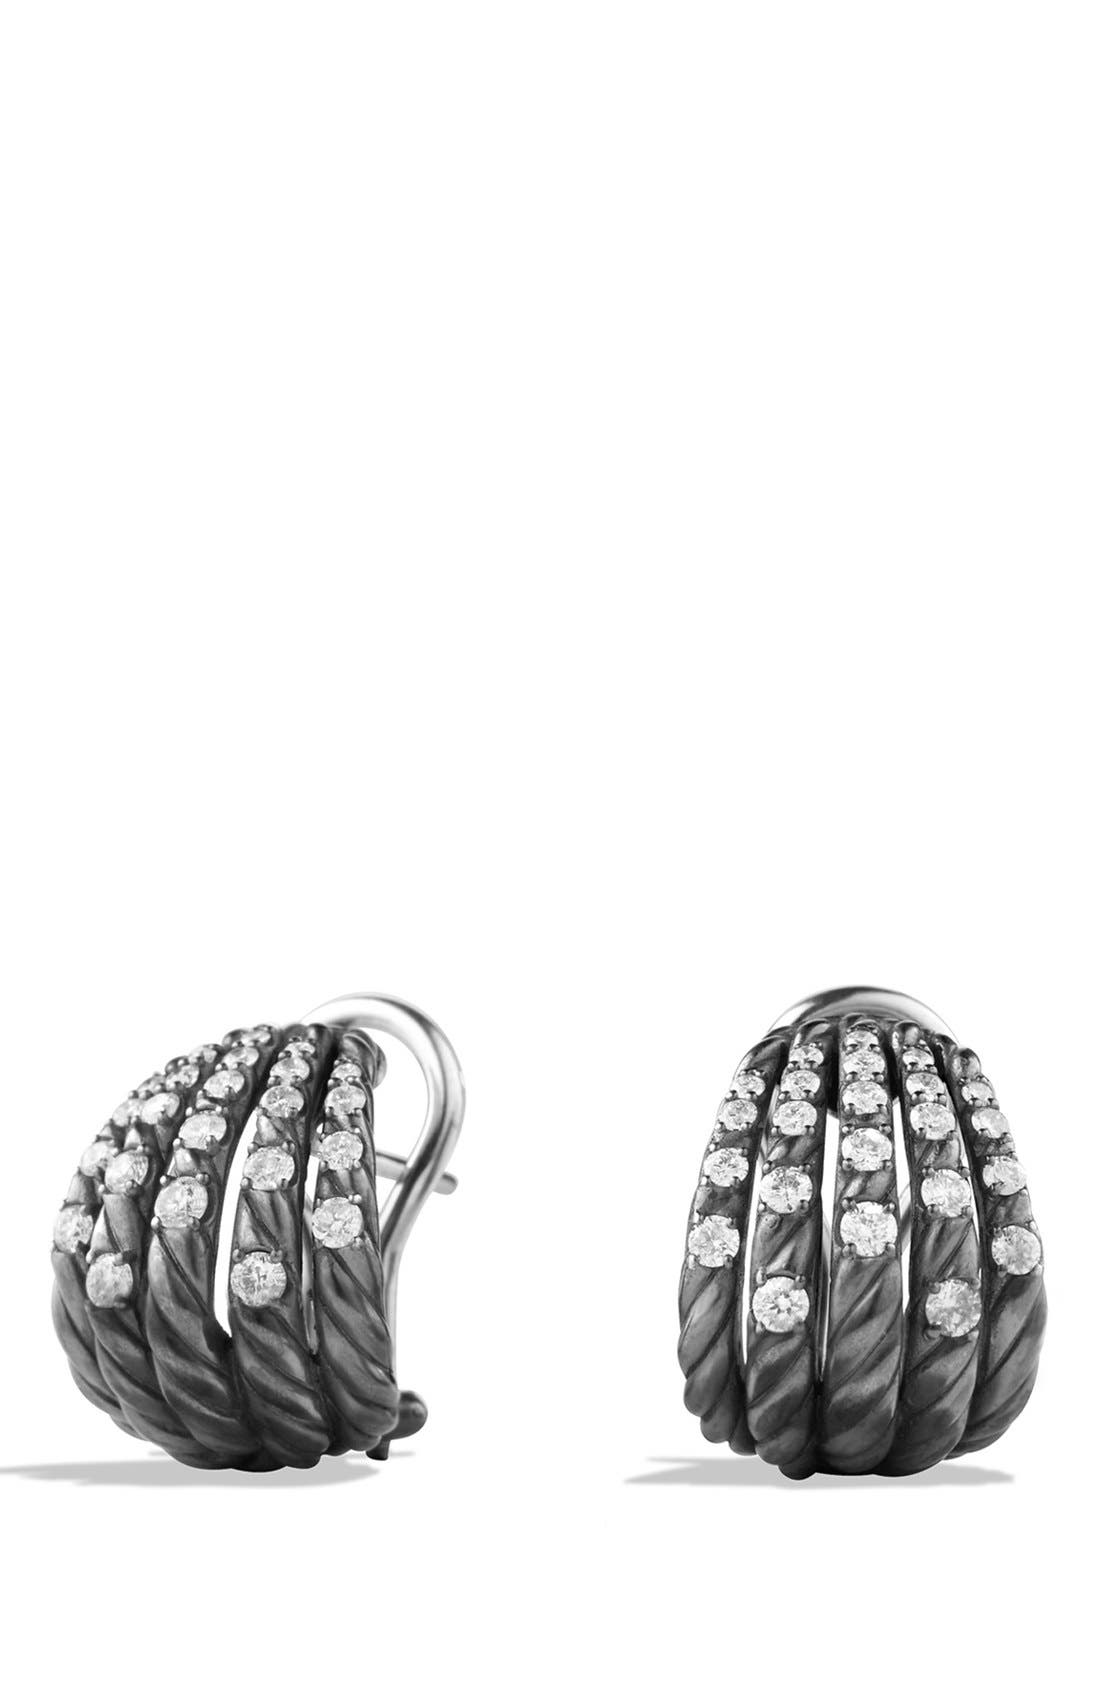 Main Image - David Yurman 'Tempo' Earrings with Diamonds